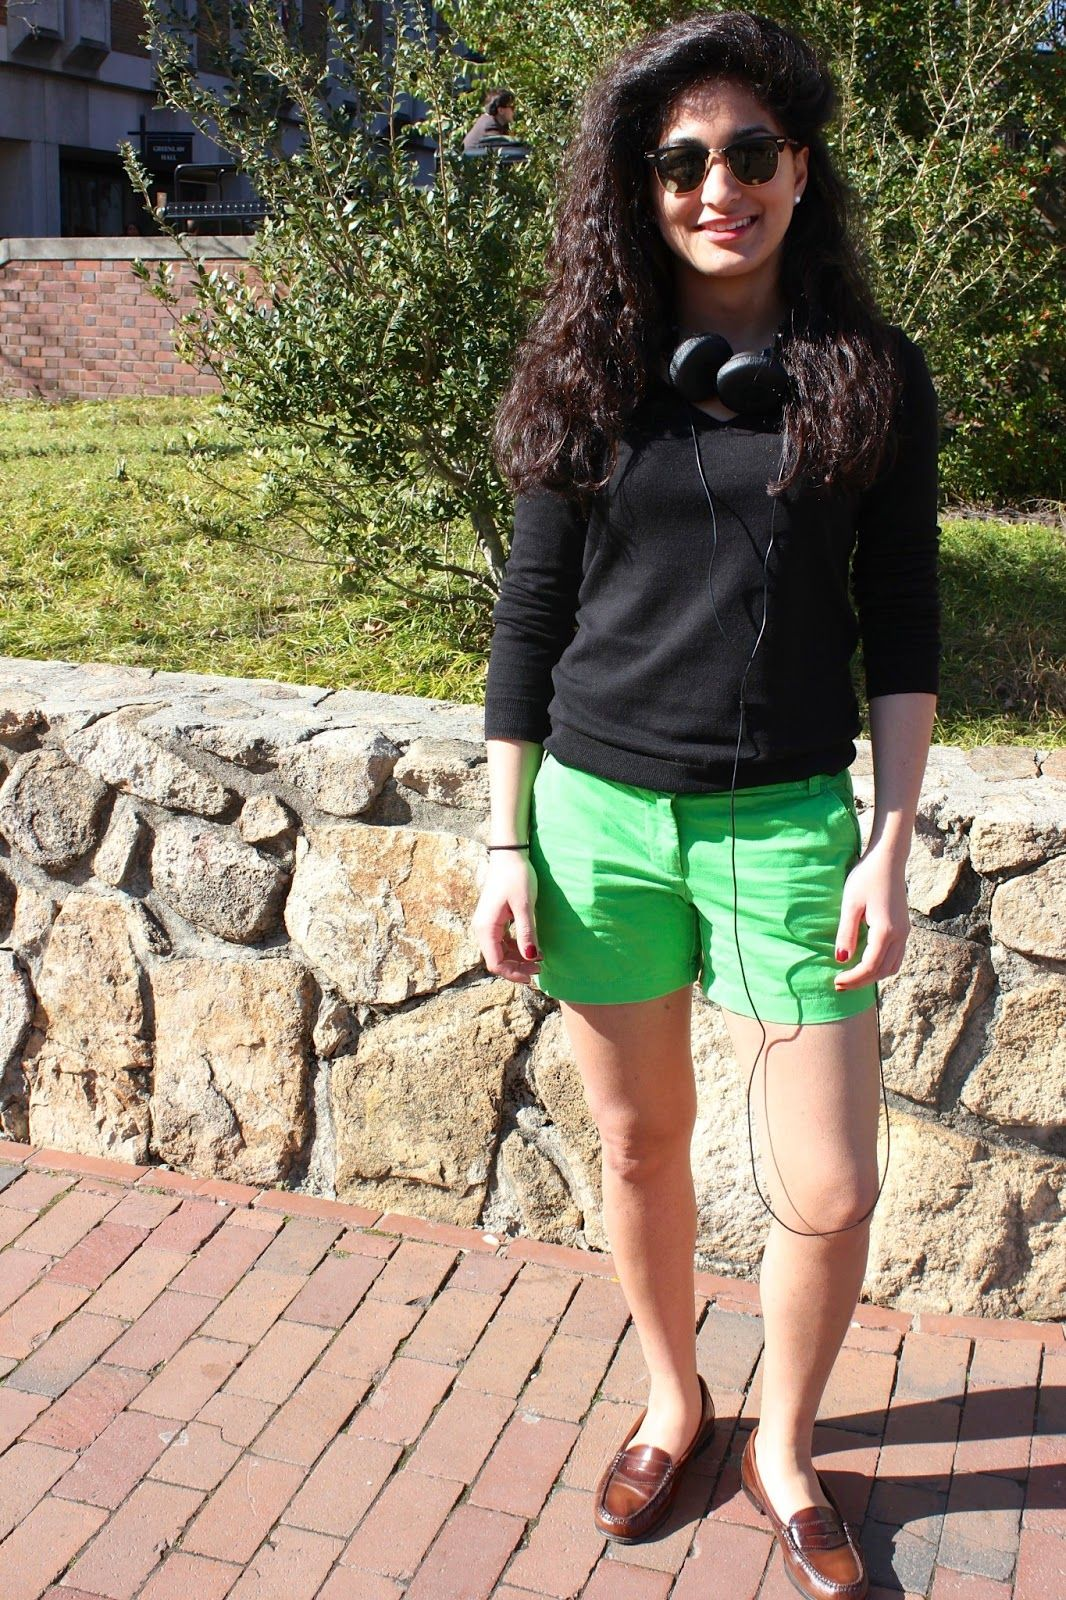 Nayab A Unc Chapel Hill Student Wears A Simple Long